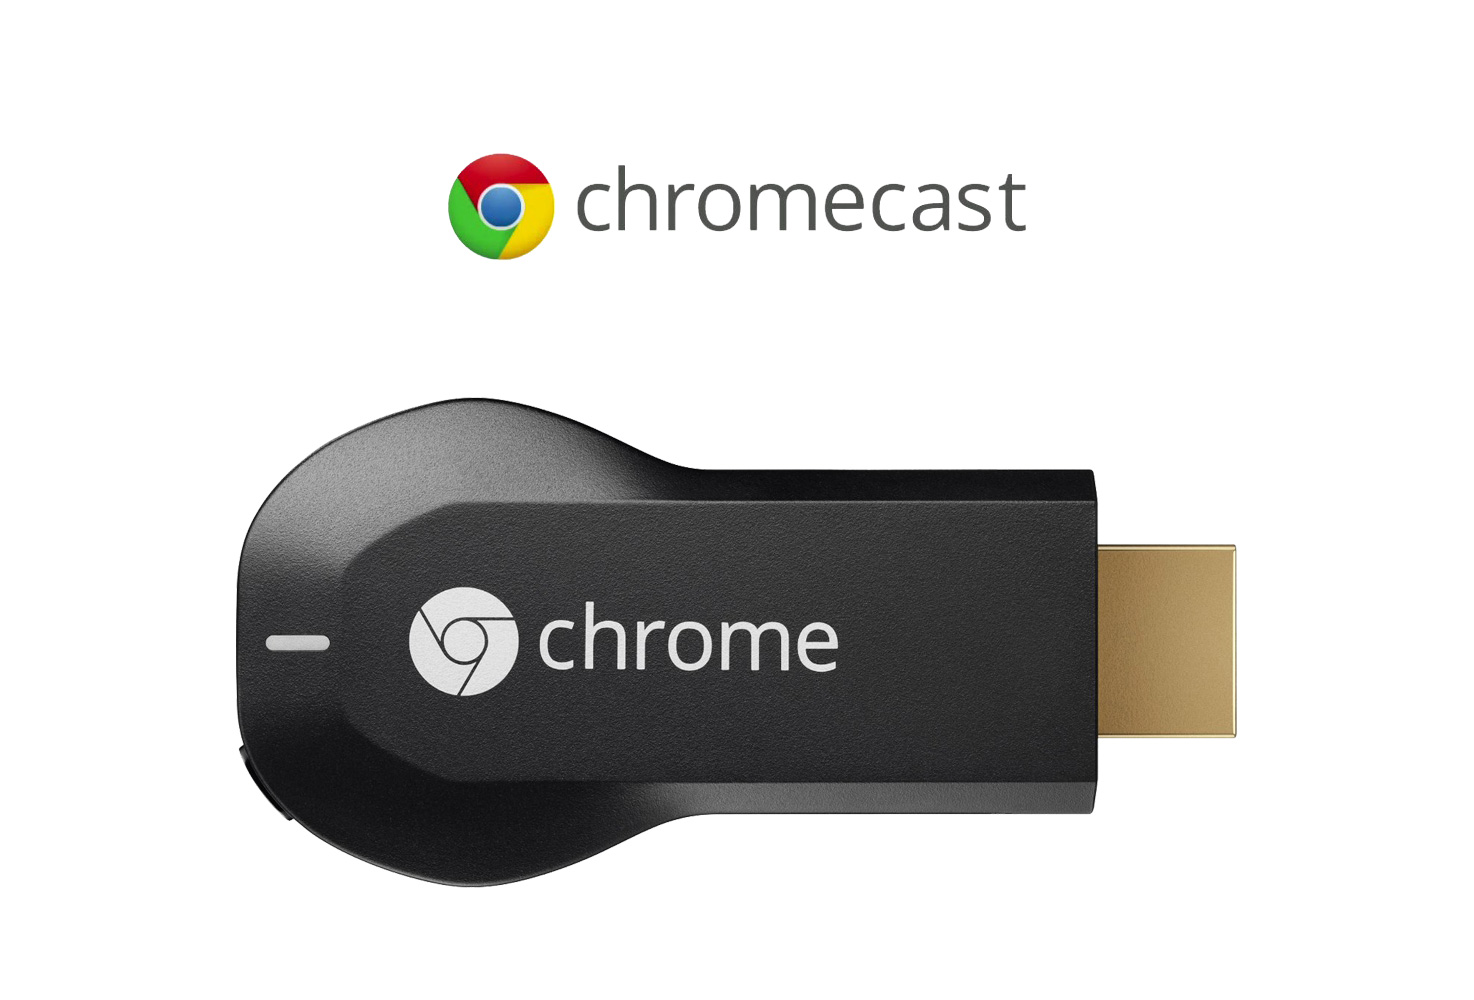 how to connect my chromecast to a different network